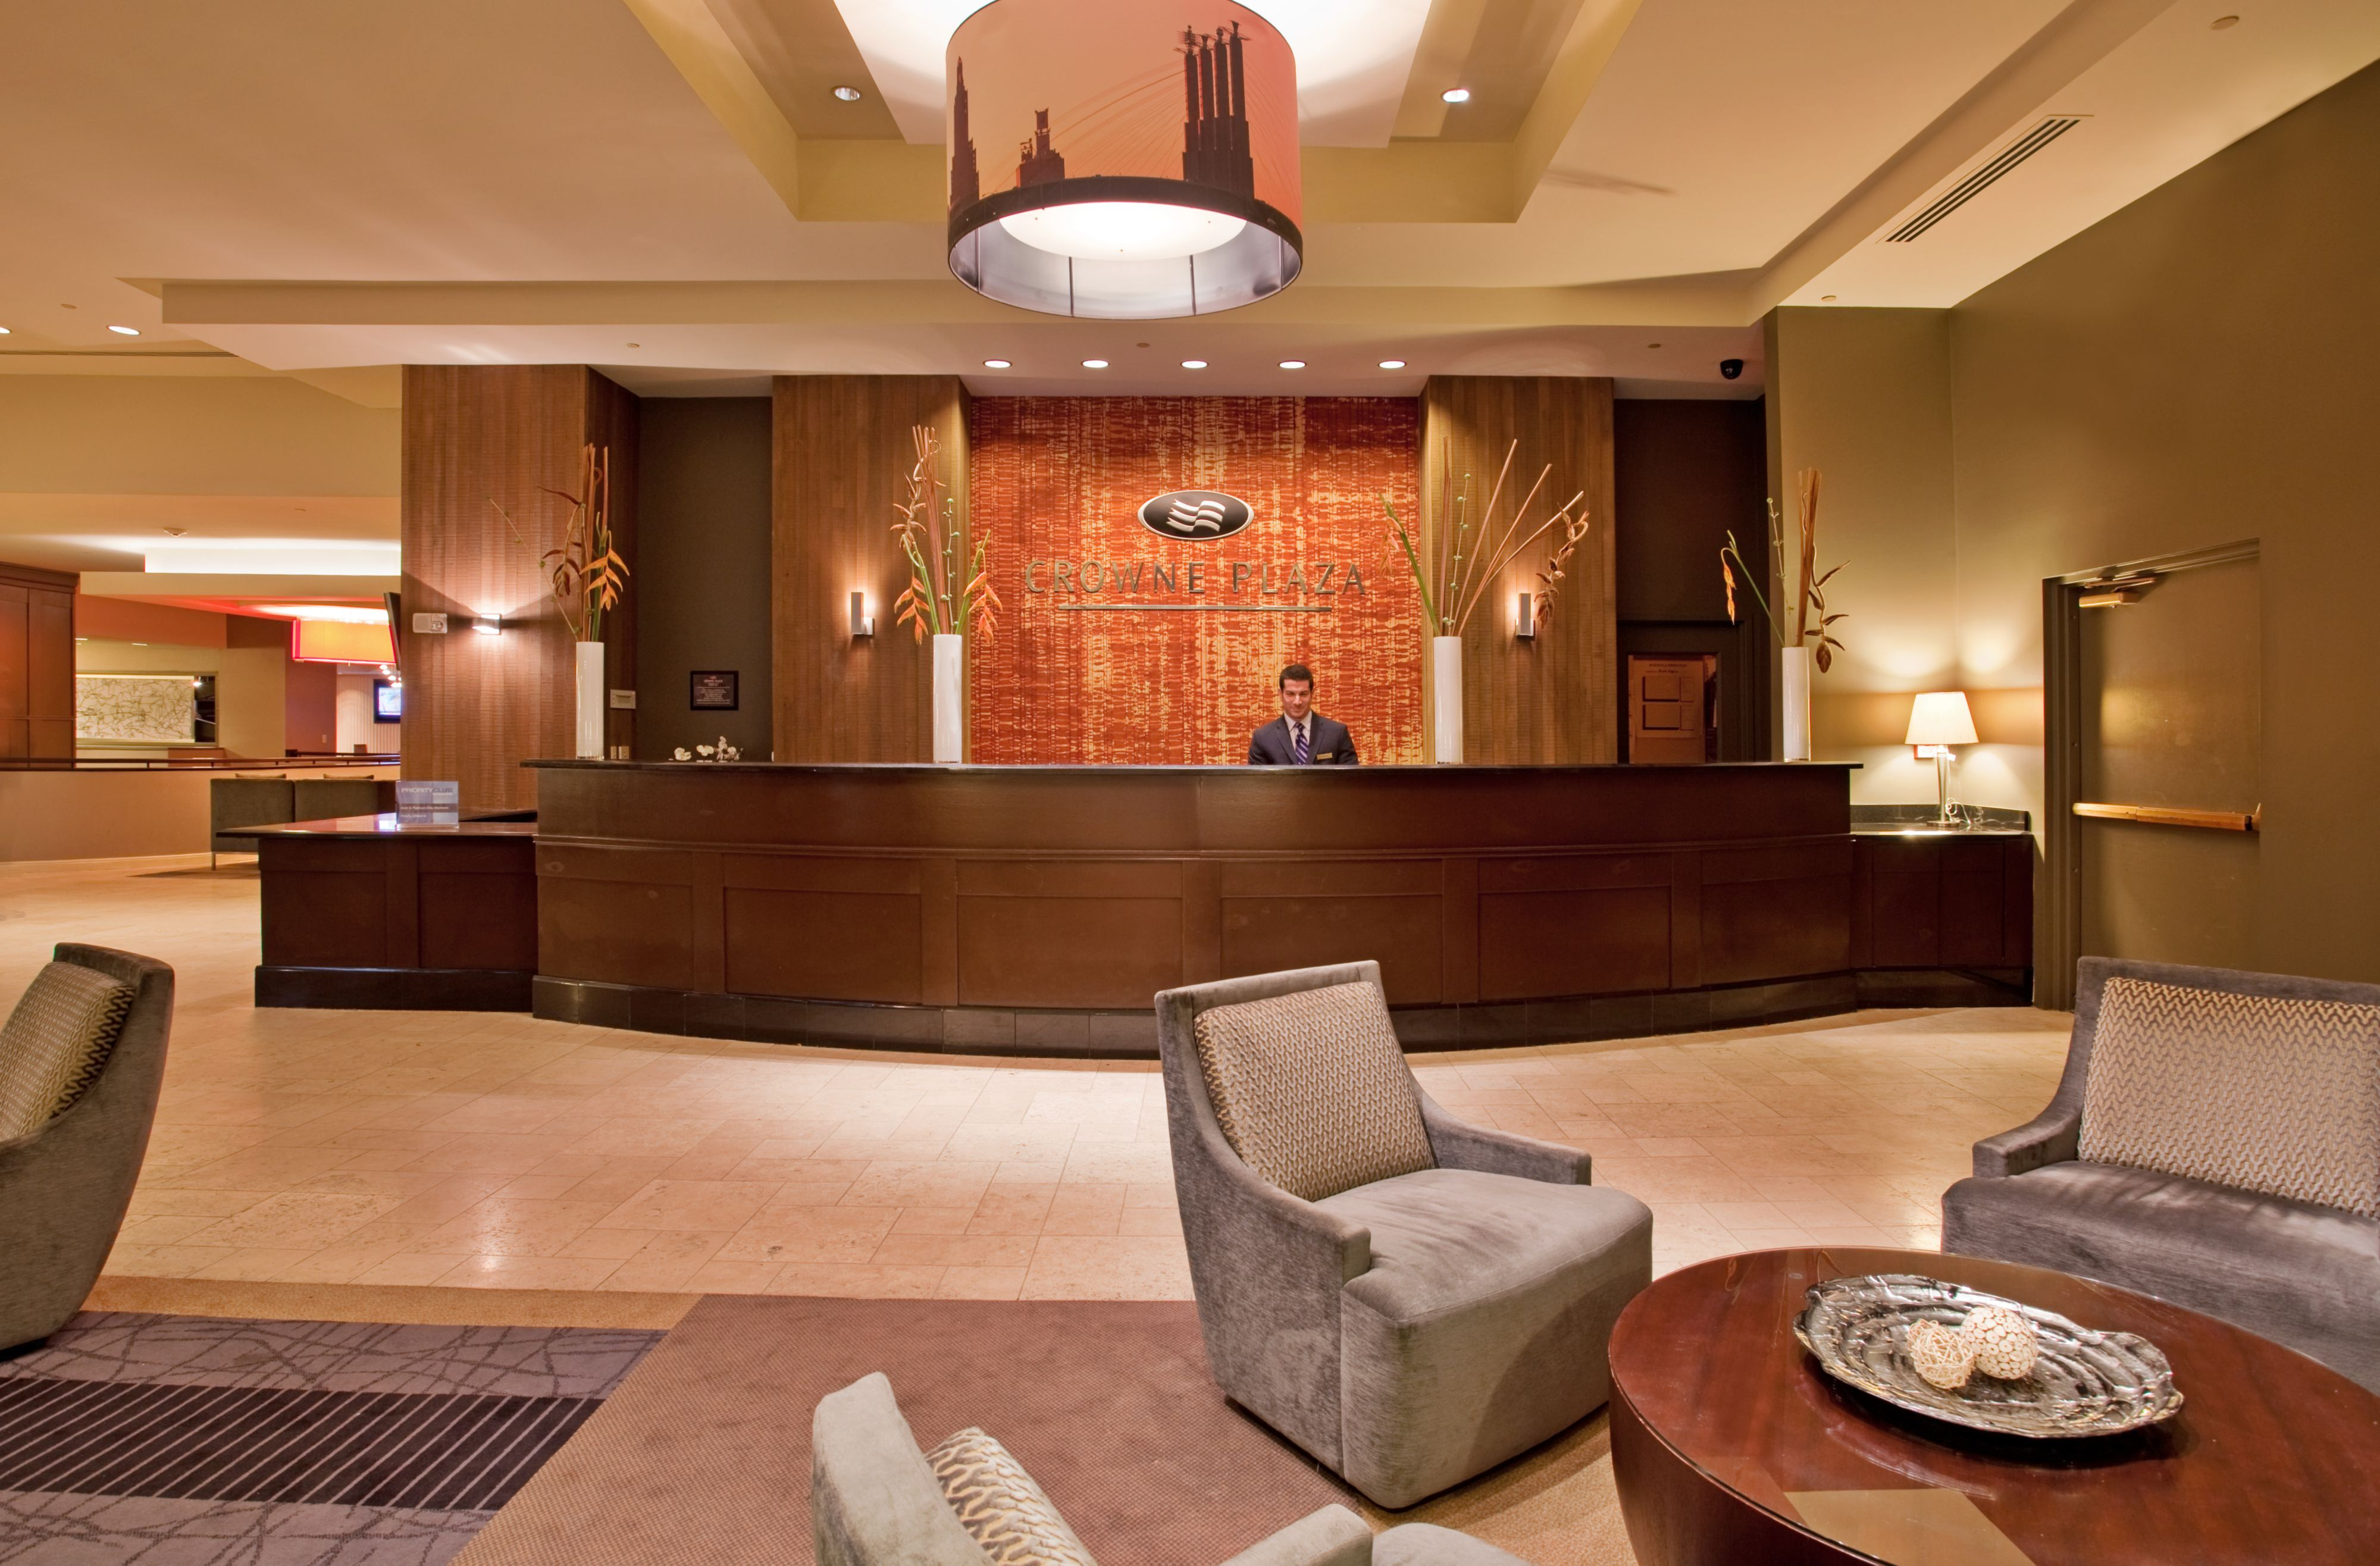 marketing plan for crown plaza hotels resorts Crowne plaza hotel amman: sales and marketing manager - see 1,498 traveler reviews, 780 candid photos, and great deals for crowne plaza hotel amman at tripadvisor.